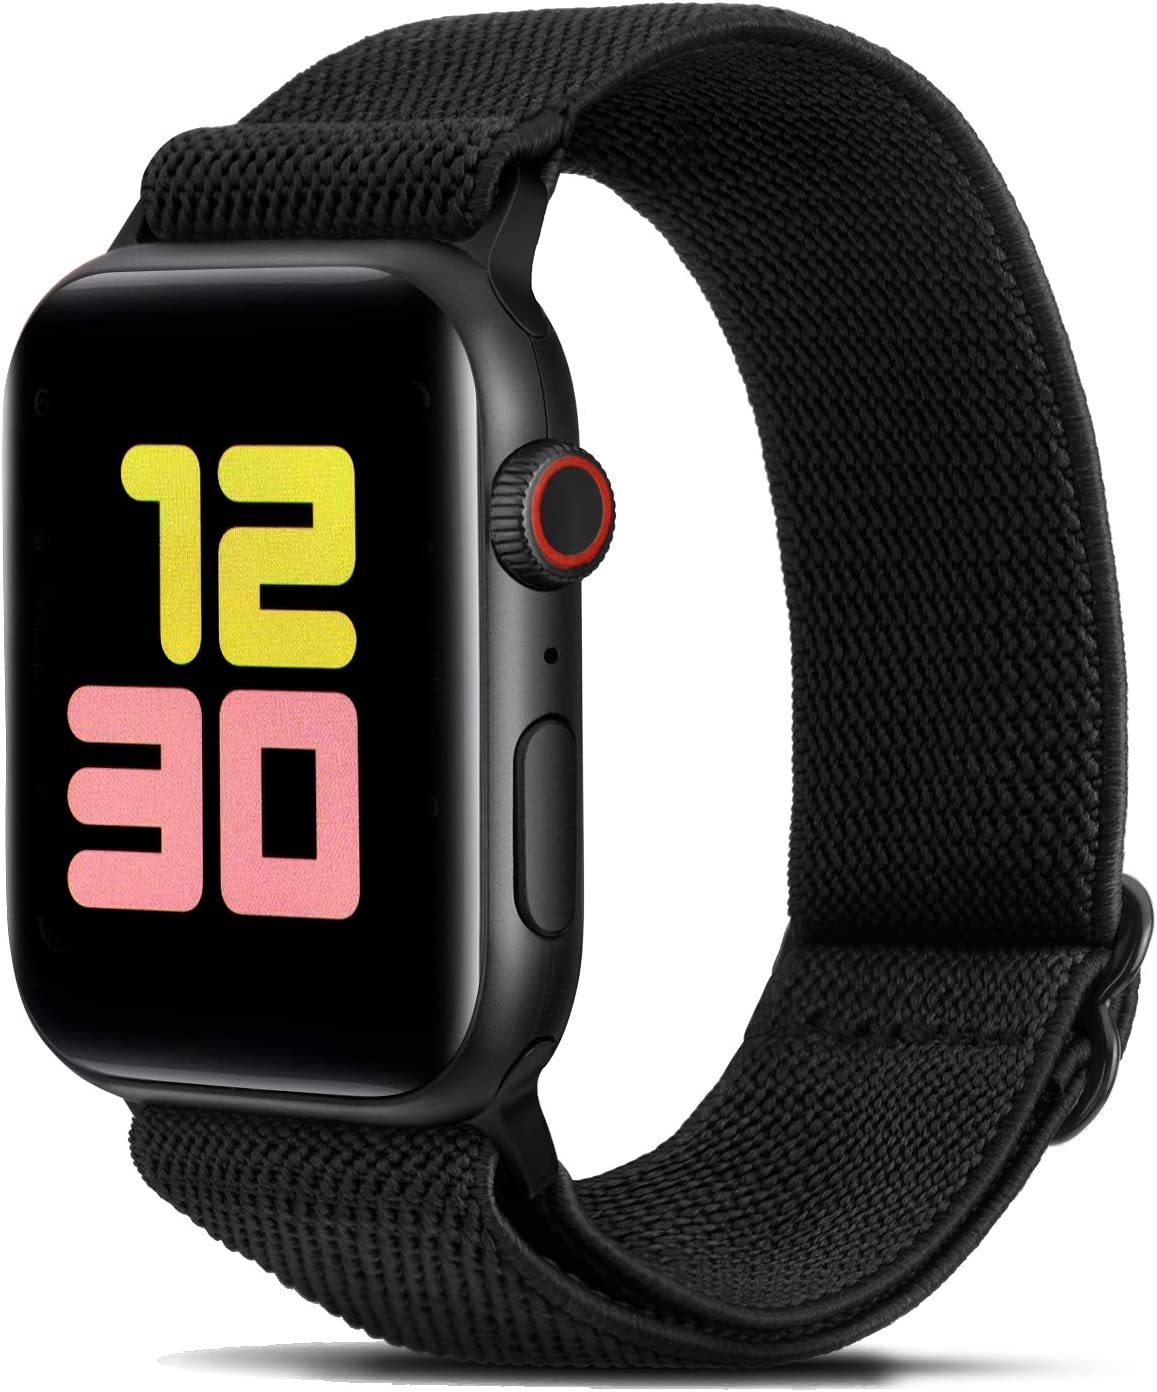 FITWORTH Adjustable Stretchy Nylon Watch Band Compatible with Apple Watch 38mm 40mm, iWatch Series 6 SE 5 4 3, Ultra Soft, Light & Breathable, Suit for Men's Women's Sports & Workout (38/40, Black)